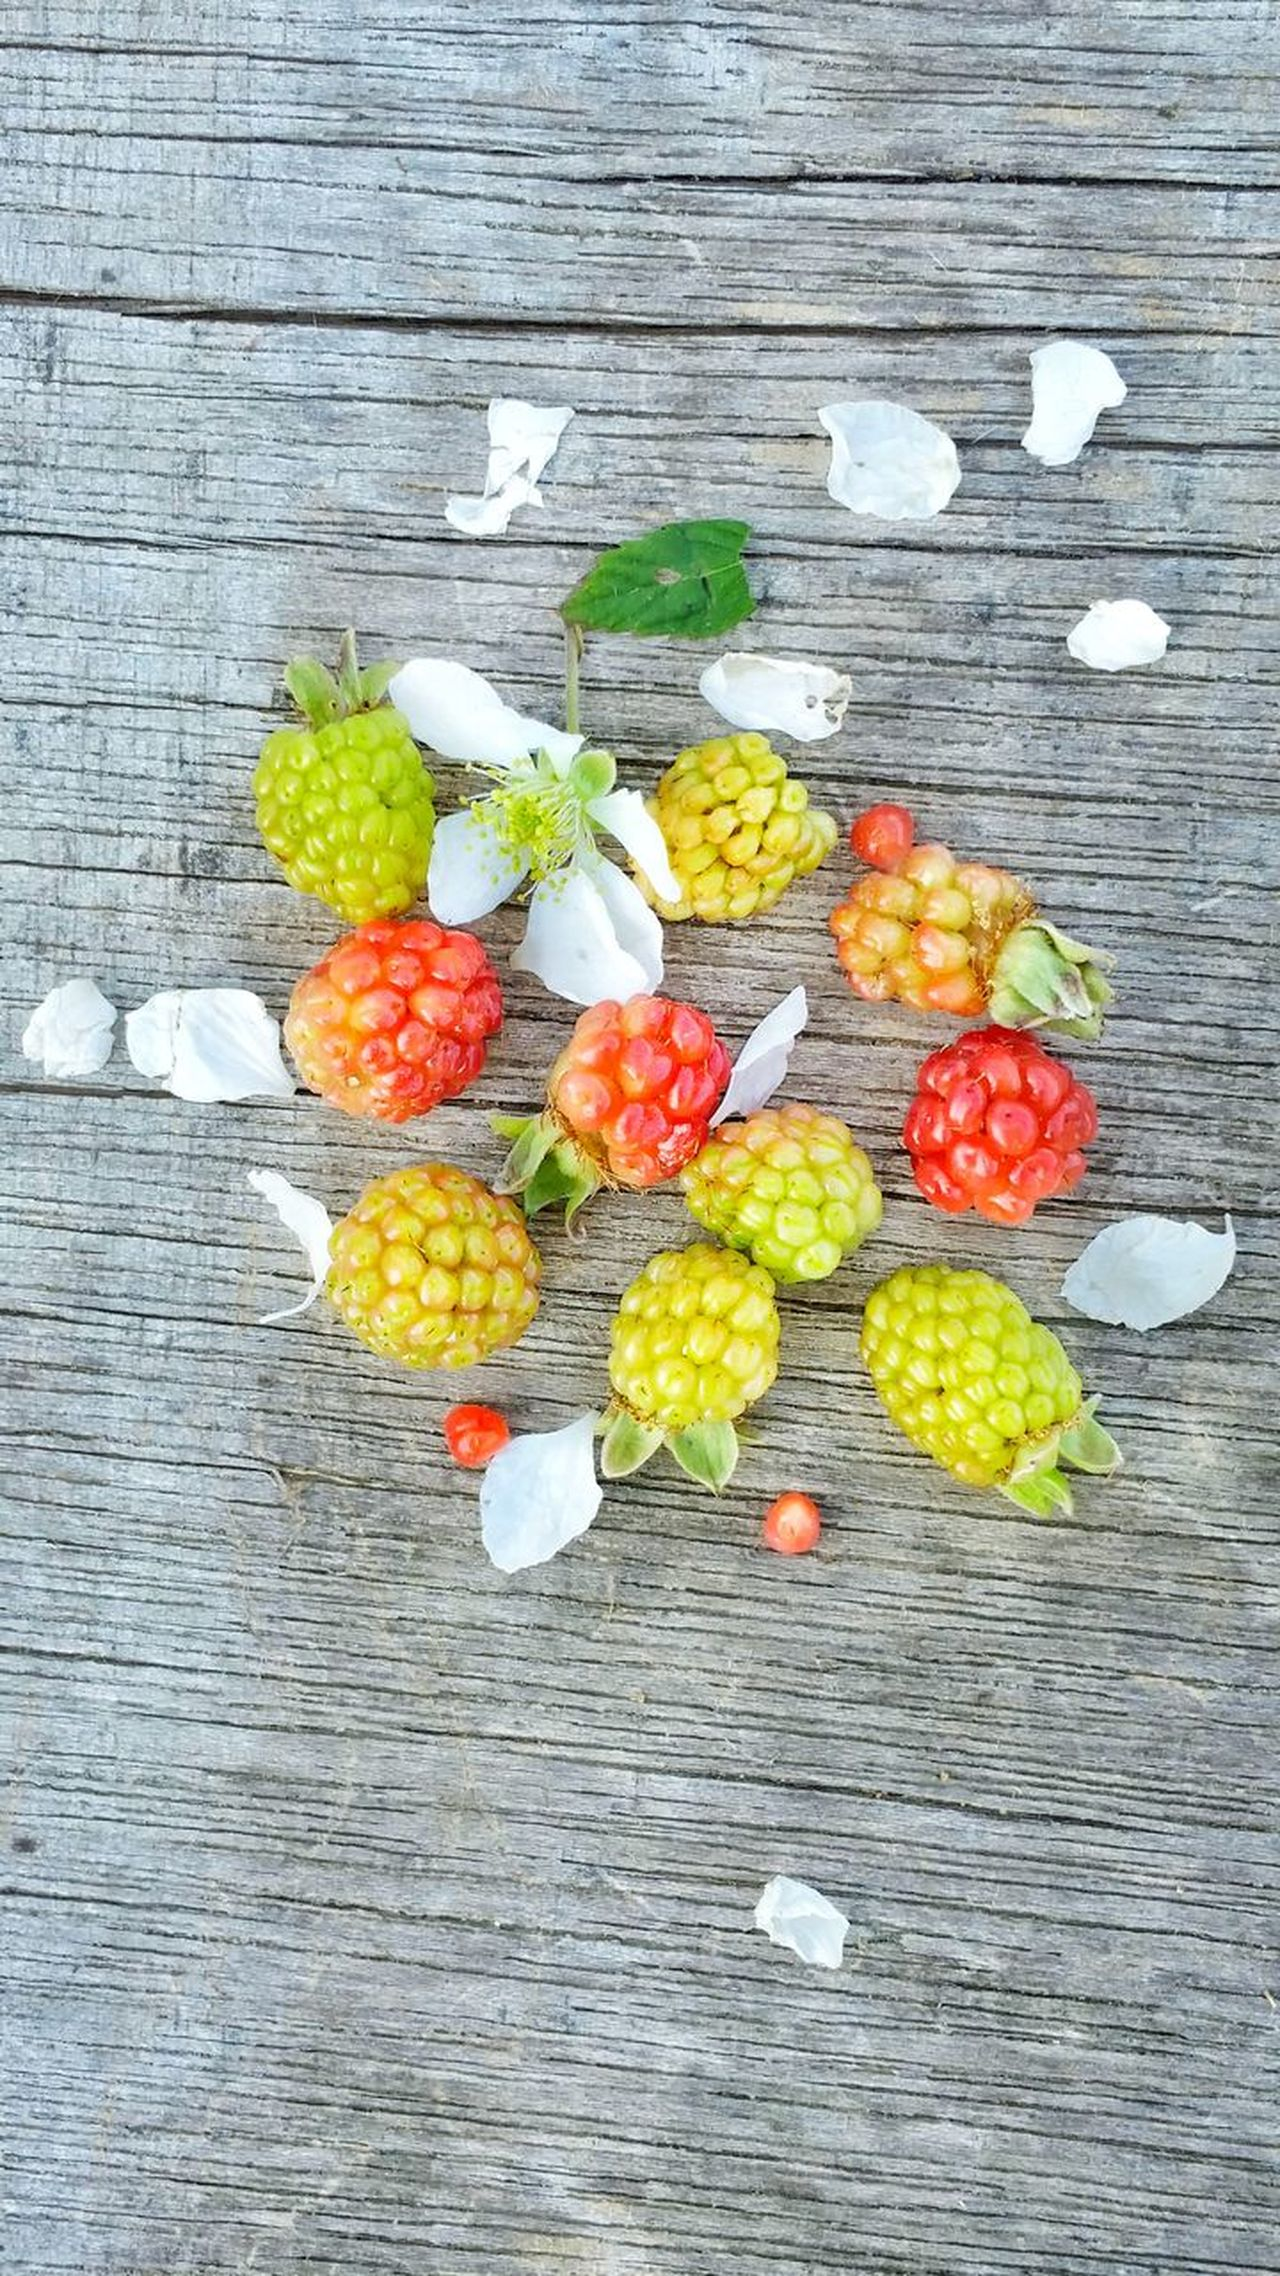 High Angle View Multi Colored Food Wood - Material Freshness Variation Ready-to-eat Outdoors Day Group Dew Berries Wild Blackberries Wild Blackberry Backgrounds Close-up Weathered Wood Room For Copy Unripe Room For Text Wild Berries Healthy Eating Fruit Freshness Bunch Visual Feast